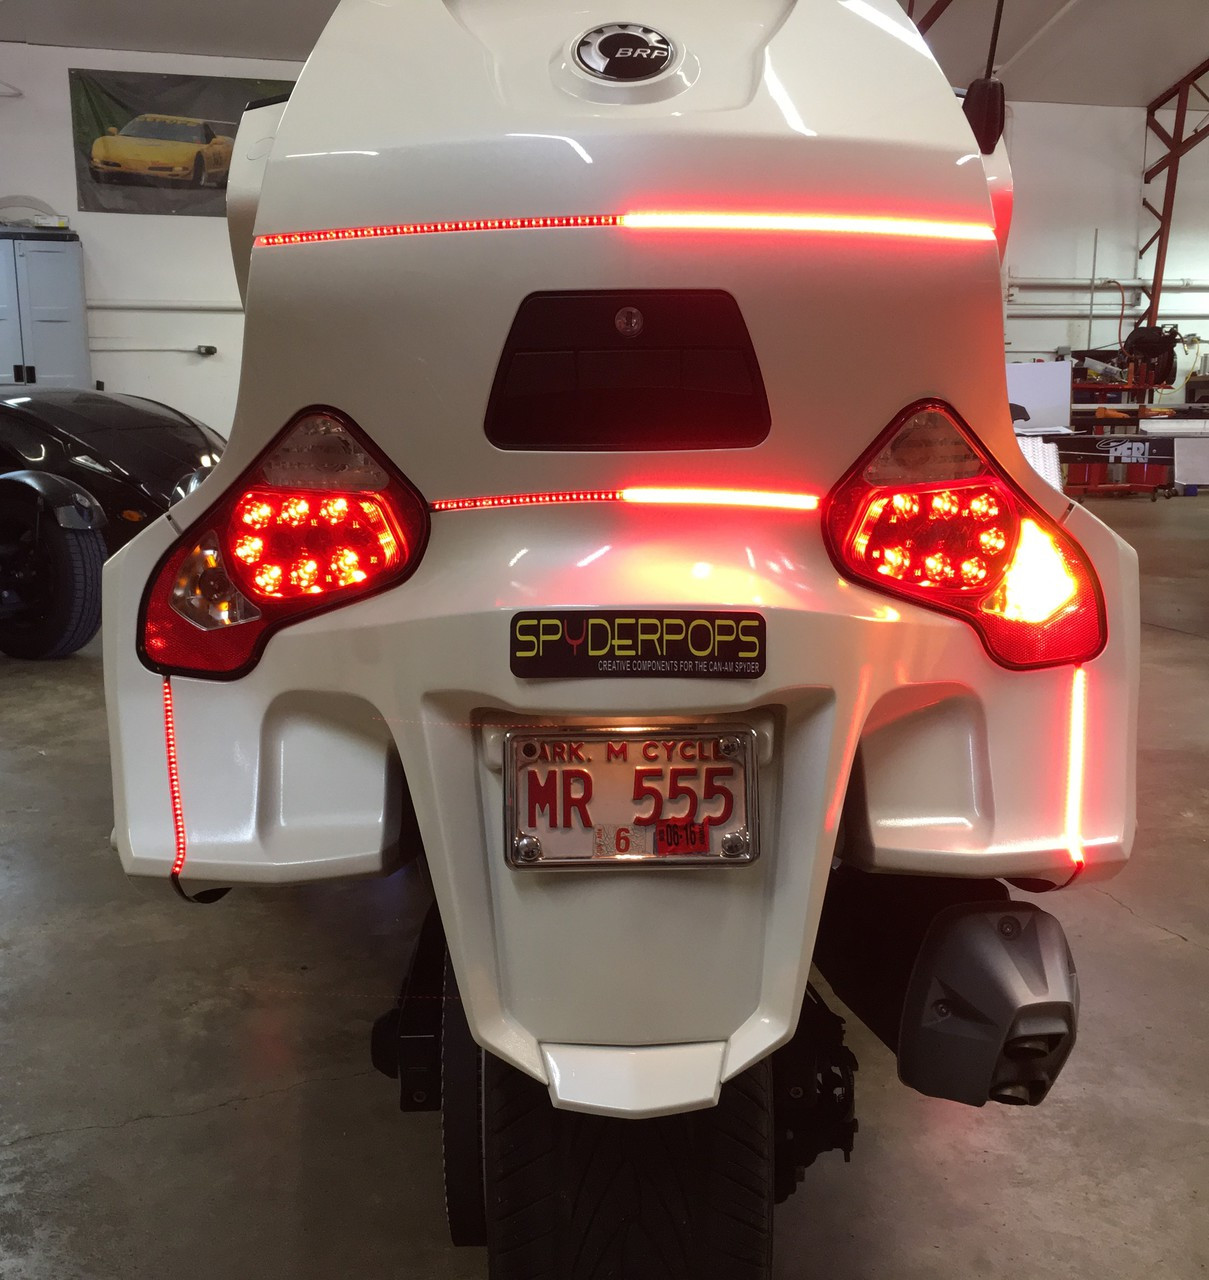 Rt Brt Rear Lighting Kit 4 Sections Brake Run Turn With Shop Categories Store Home Lights Electrical Signals Tail